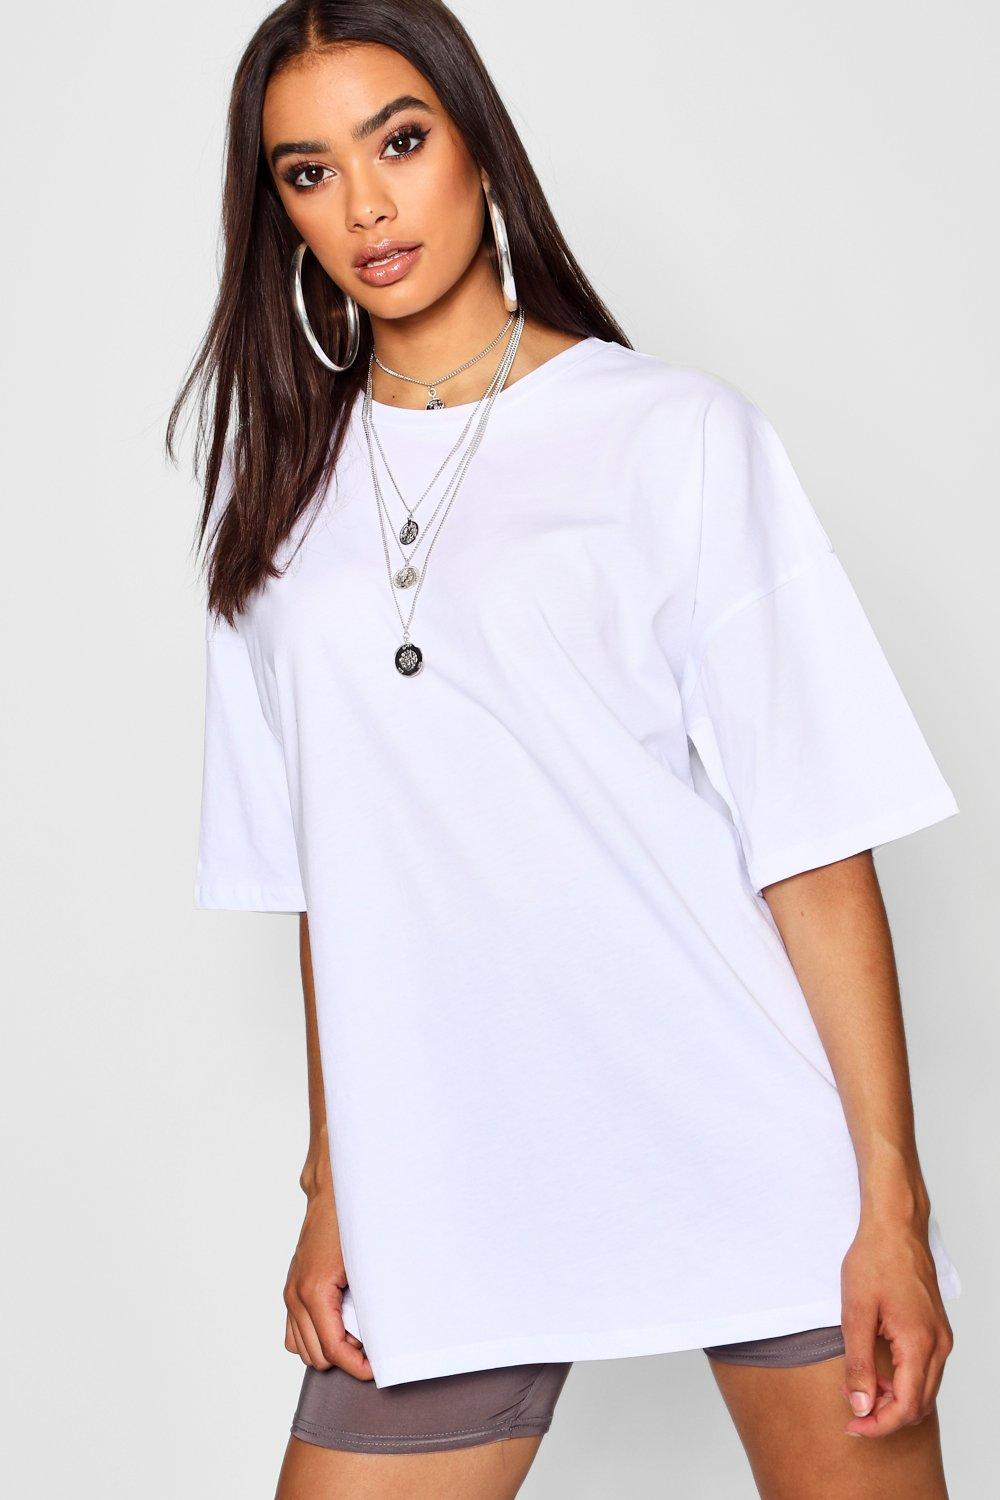 white Shirt Pastel Washed T Oversized xwYSqc4